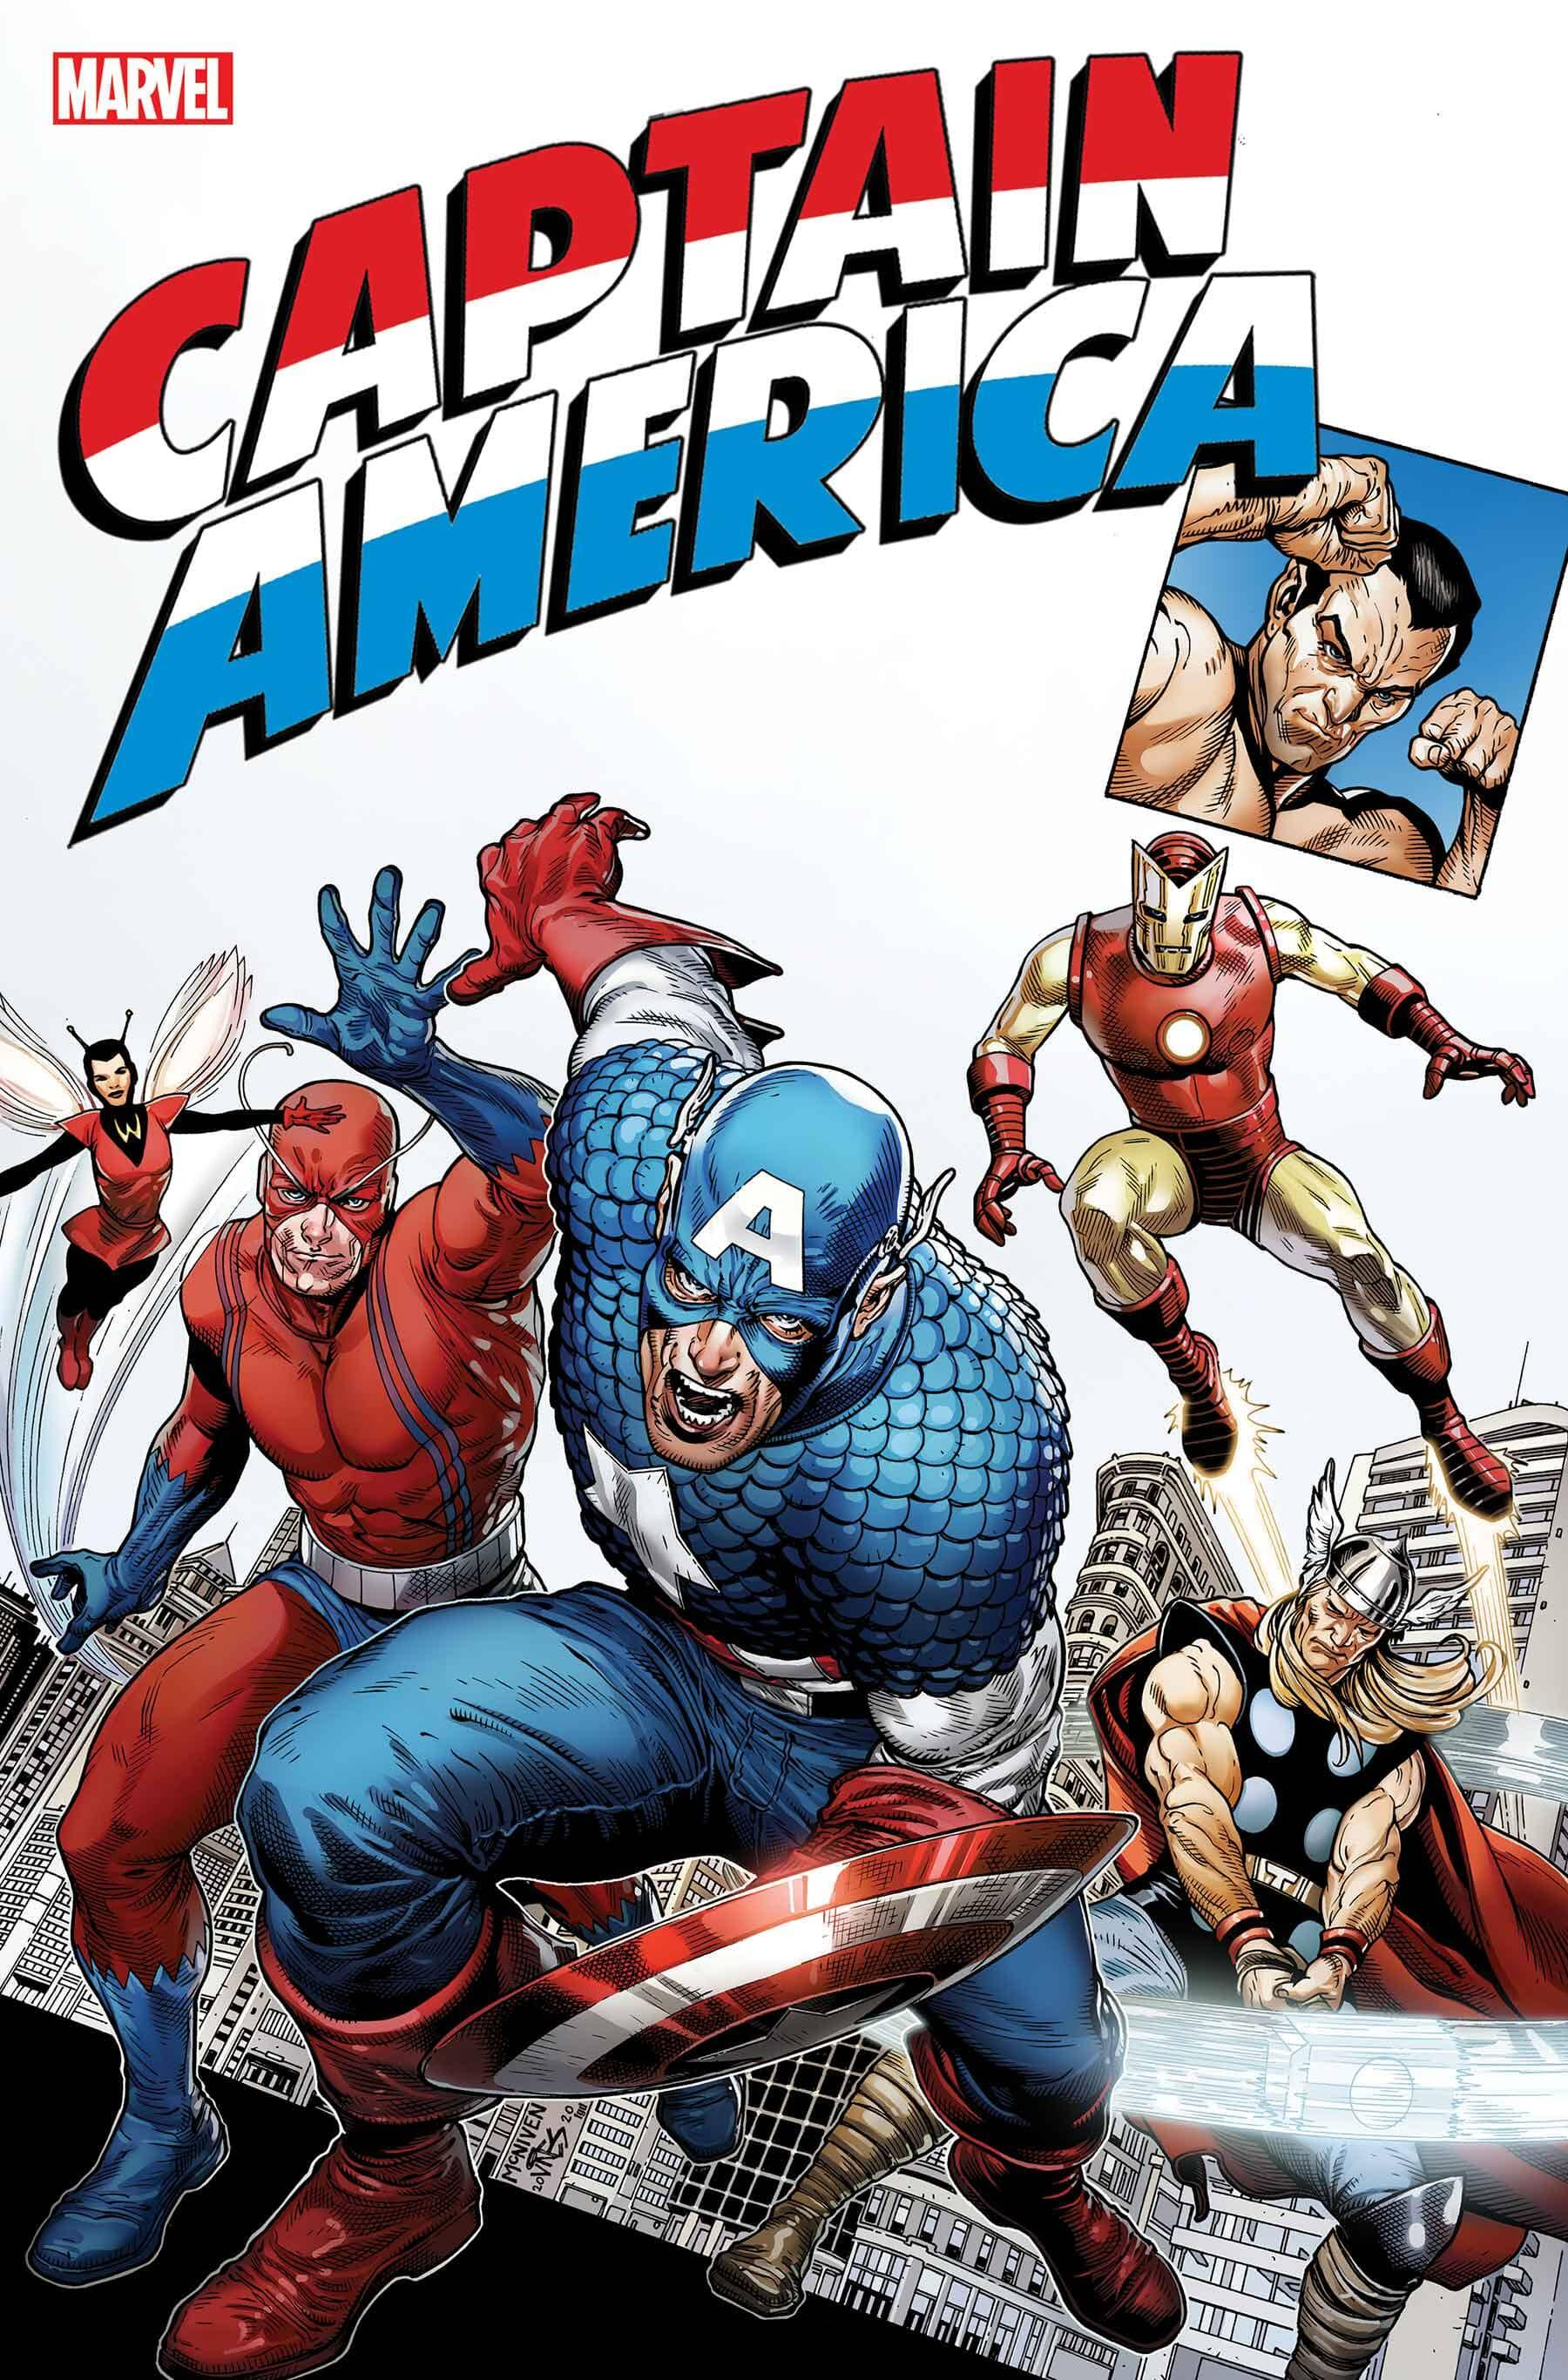 Captain America races toward the viewer, holding his red, white, and blue shield, with Thor and other superheroes behind him